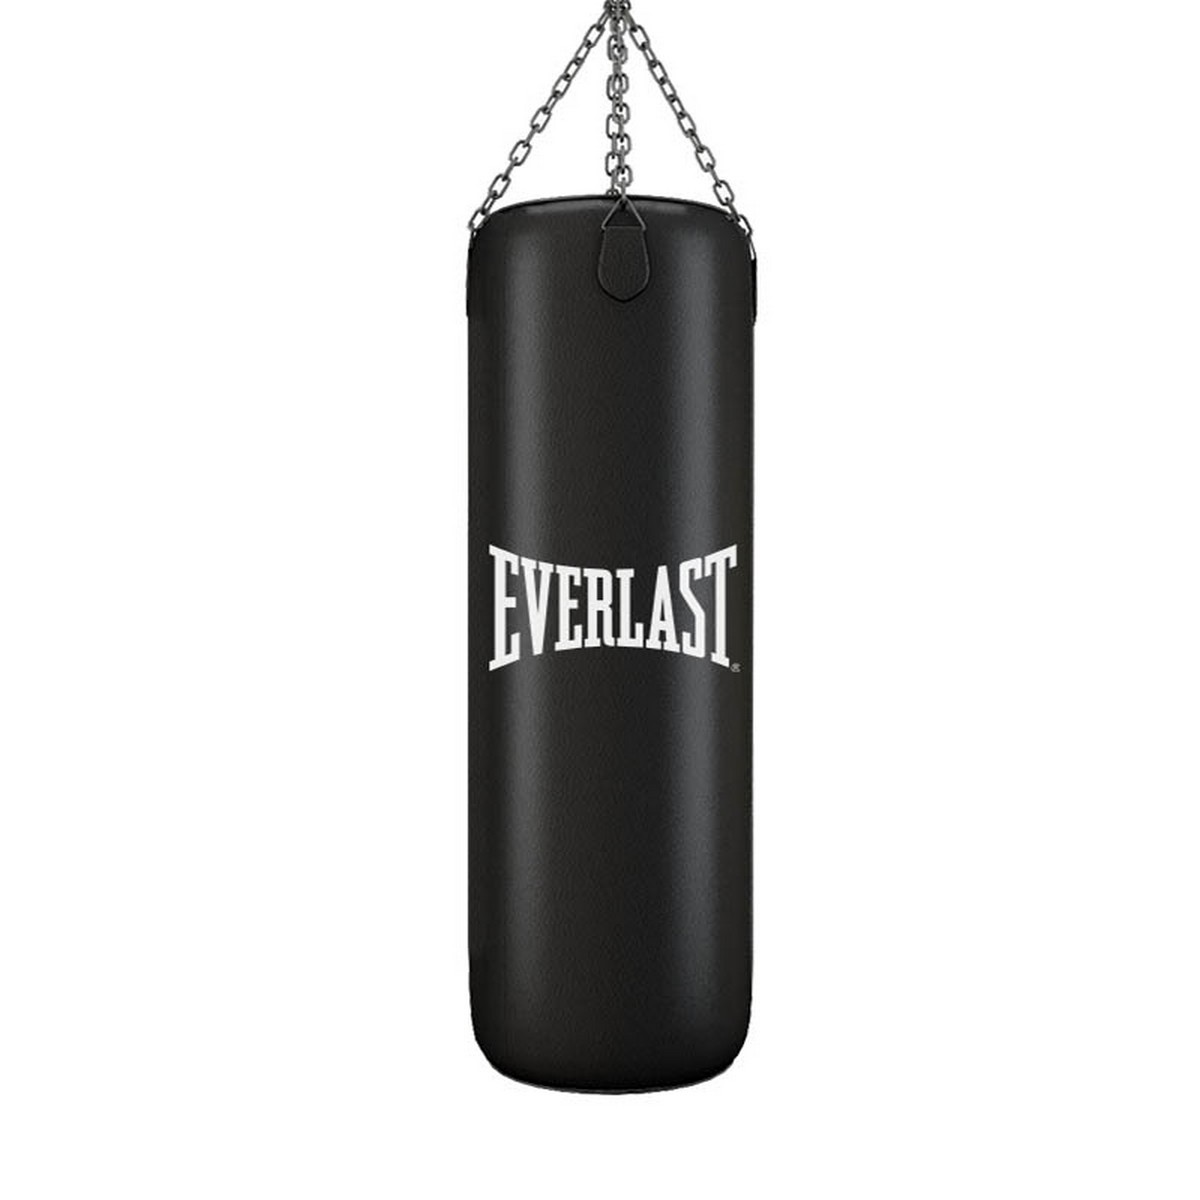 Leather Boxing Bag 4ft with Hanging Chain